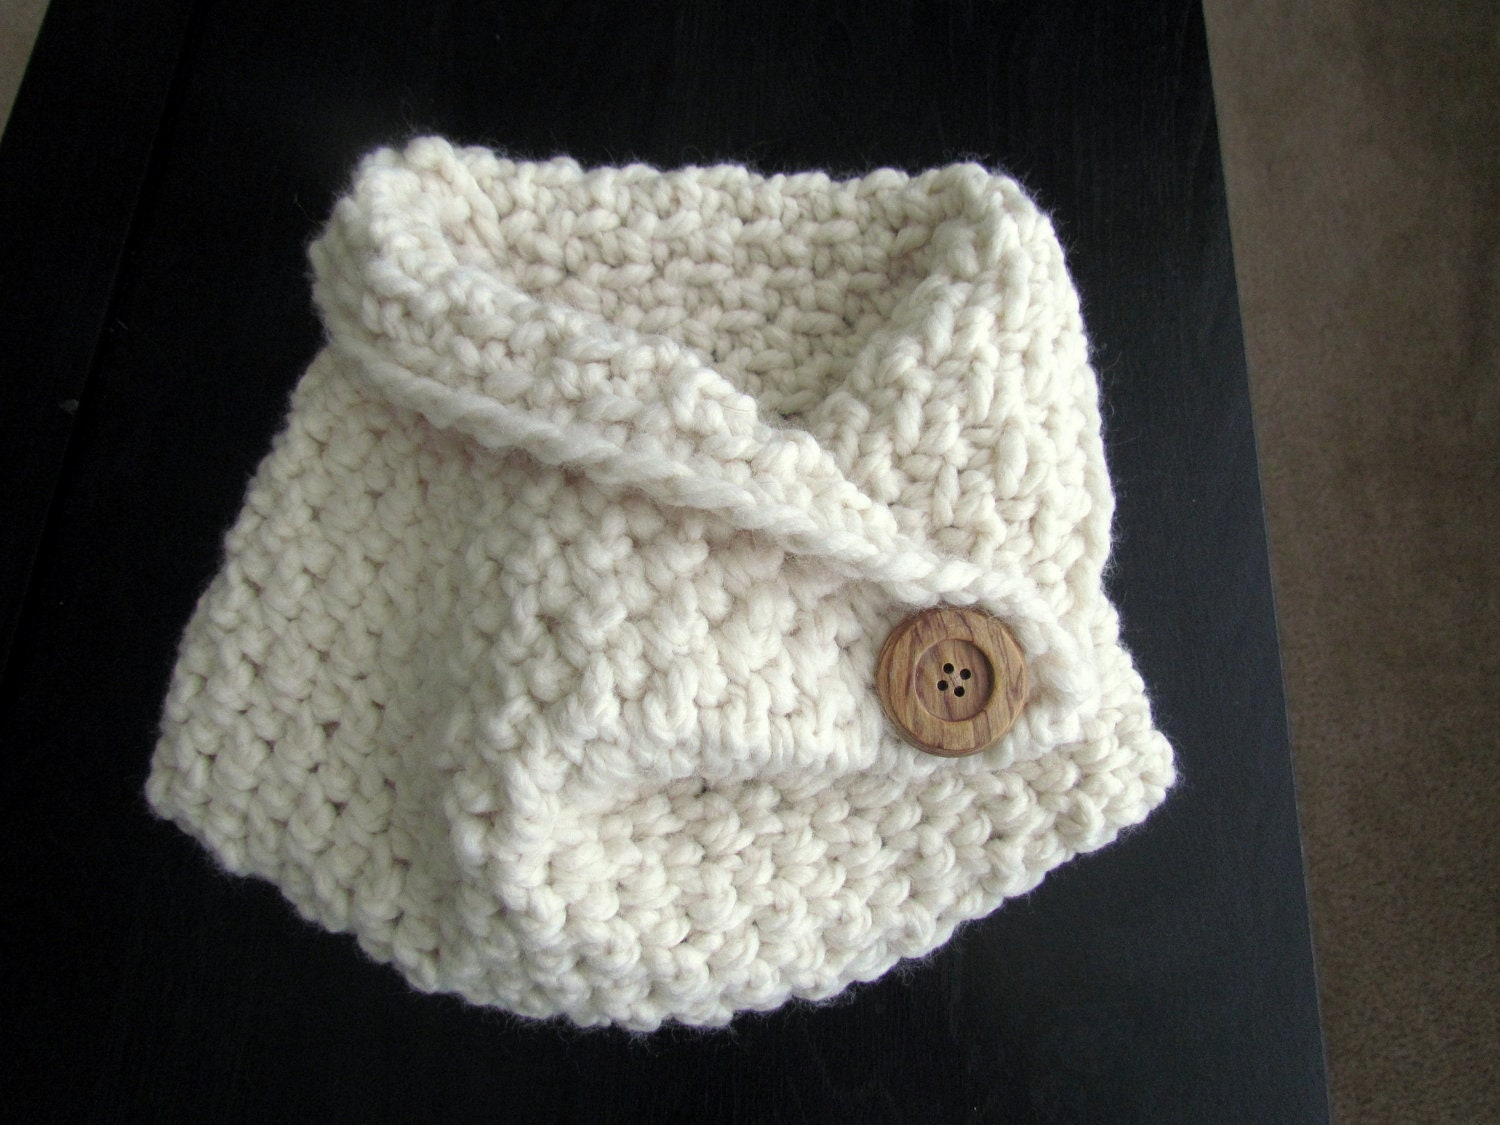 Crochet Cowl Neck Scarf Toddler Size by KreatedbyKendra on Etsy Cowl Neck Scarves Crochet